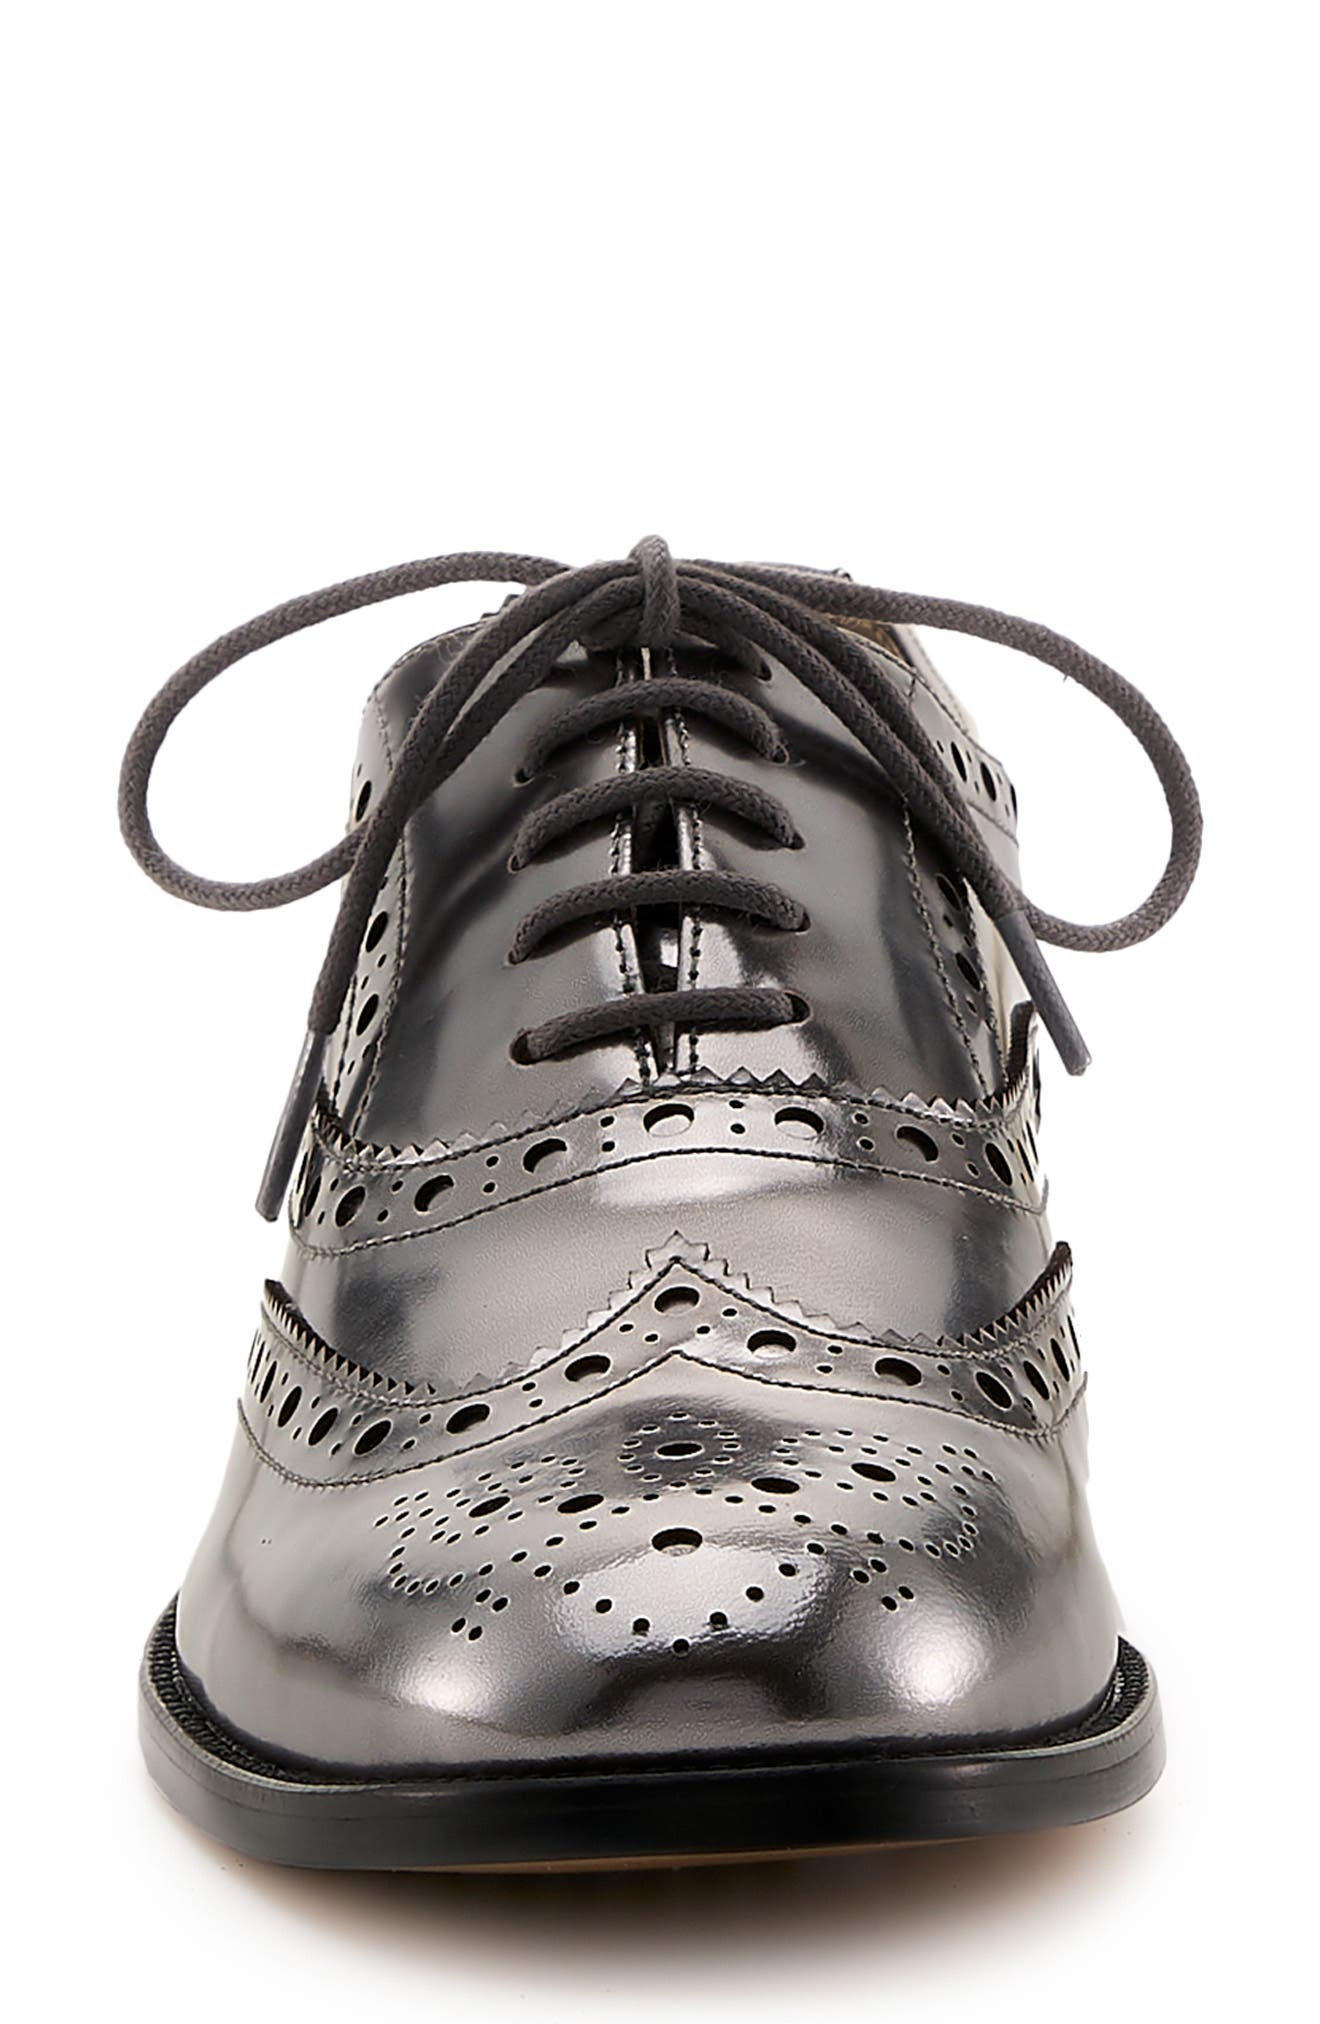 BOTKIER, Calista Metallic Wingtip Oxford, Alternate thumbnail 4, color, PEWTER METALLIC